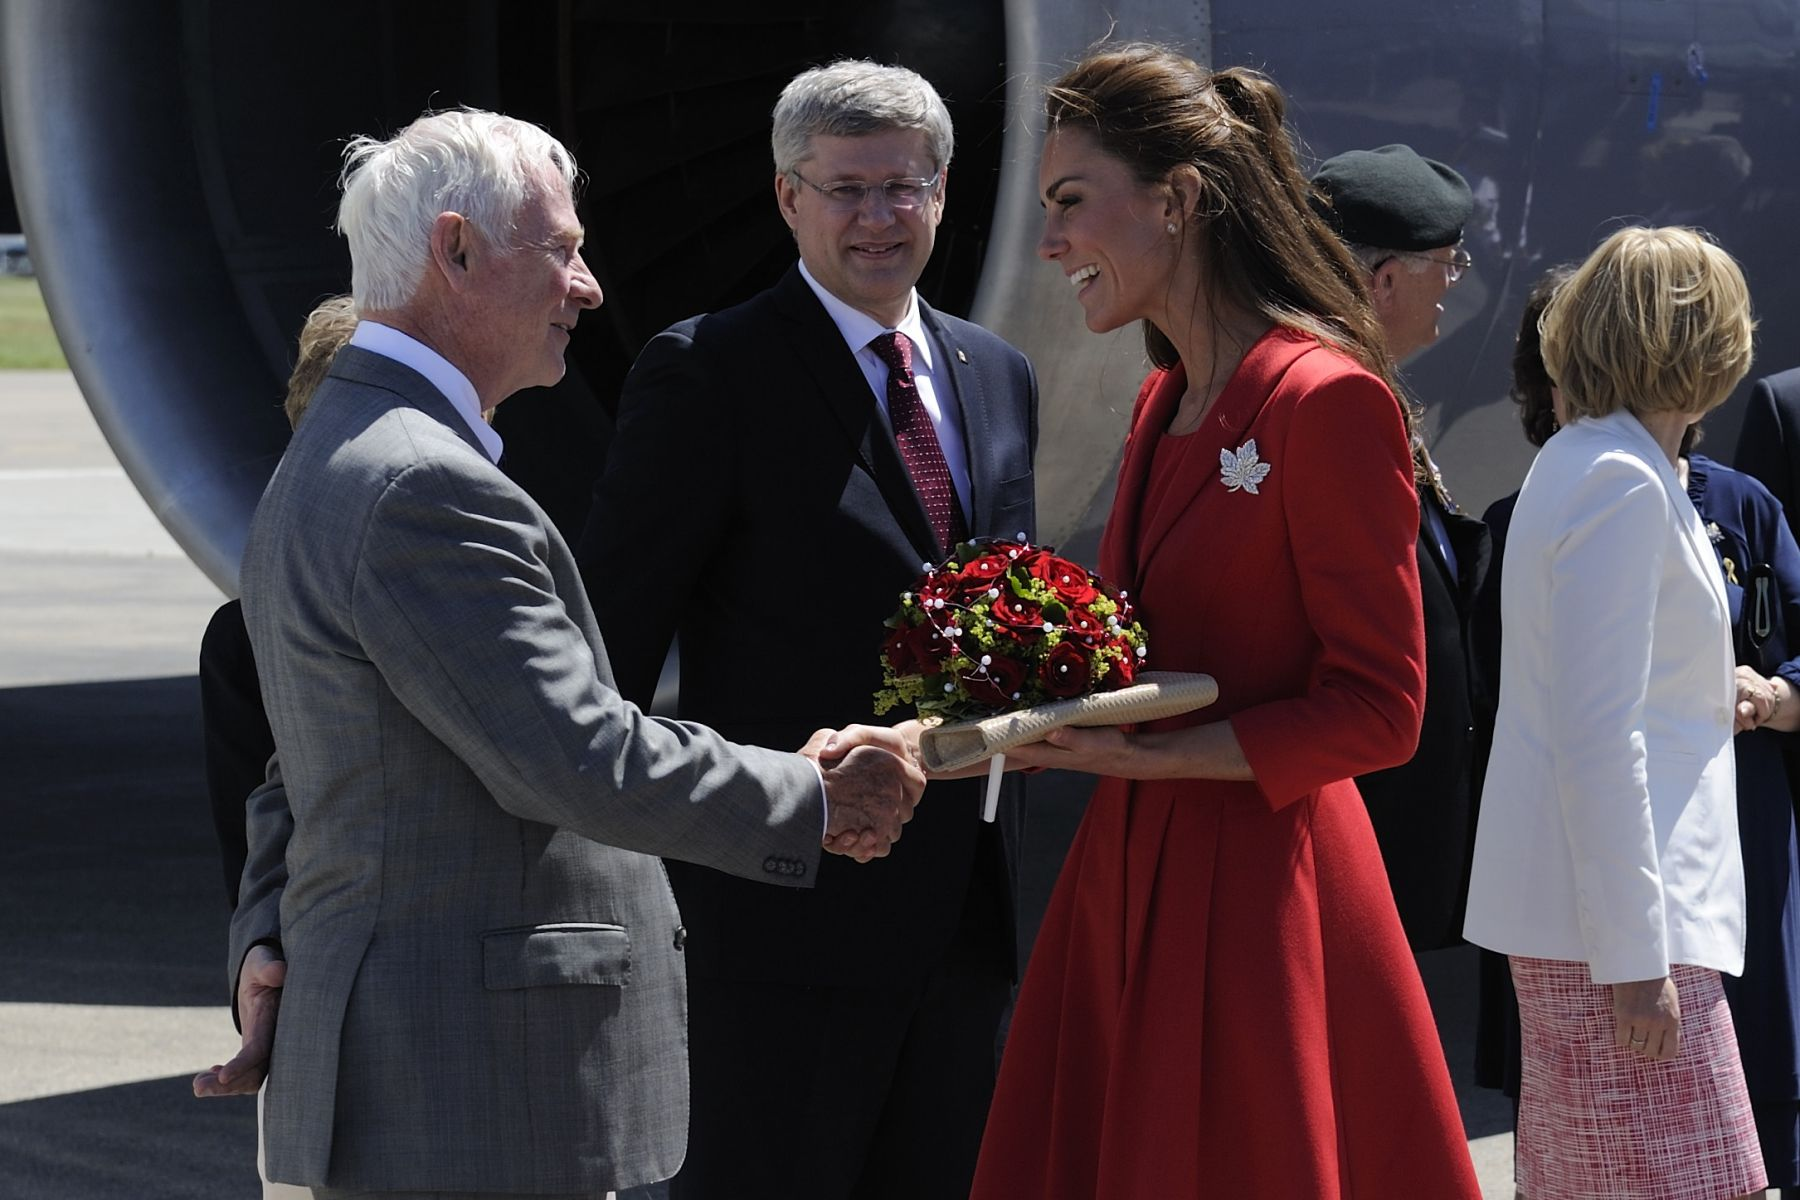 The Duke and Duchess of Cambridge debuted their Royal Tour of Canada on June 30 with an Official Welcoming Ceremony and a Celebration of Youth Reception at Rideau Hall. Their stay in Canada's Capital Region concluded on July 2 with a tree planting ceremony on the Rideau Hall grounds in the presence of Their Excellencies.